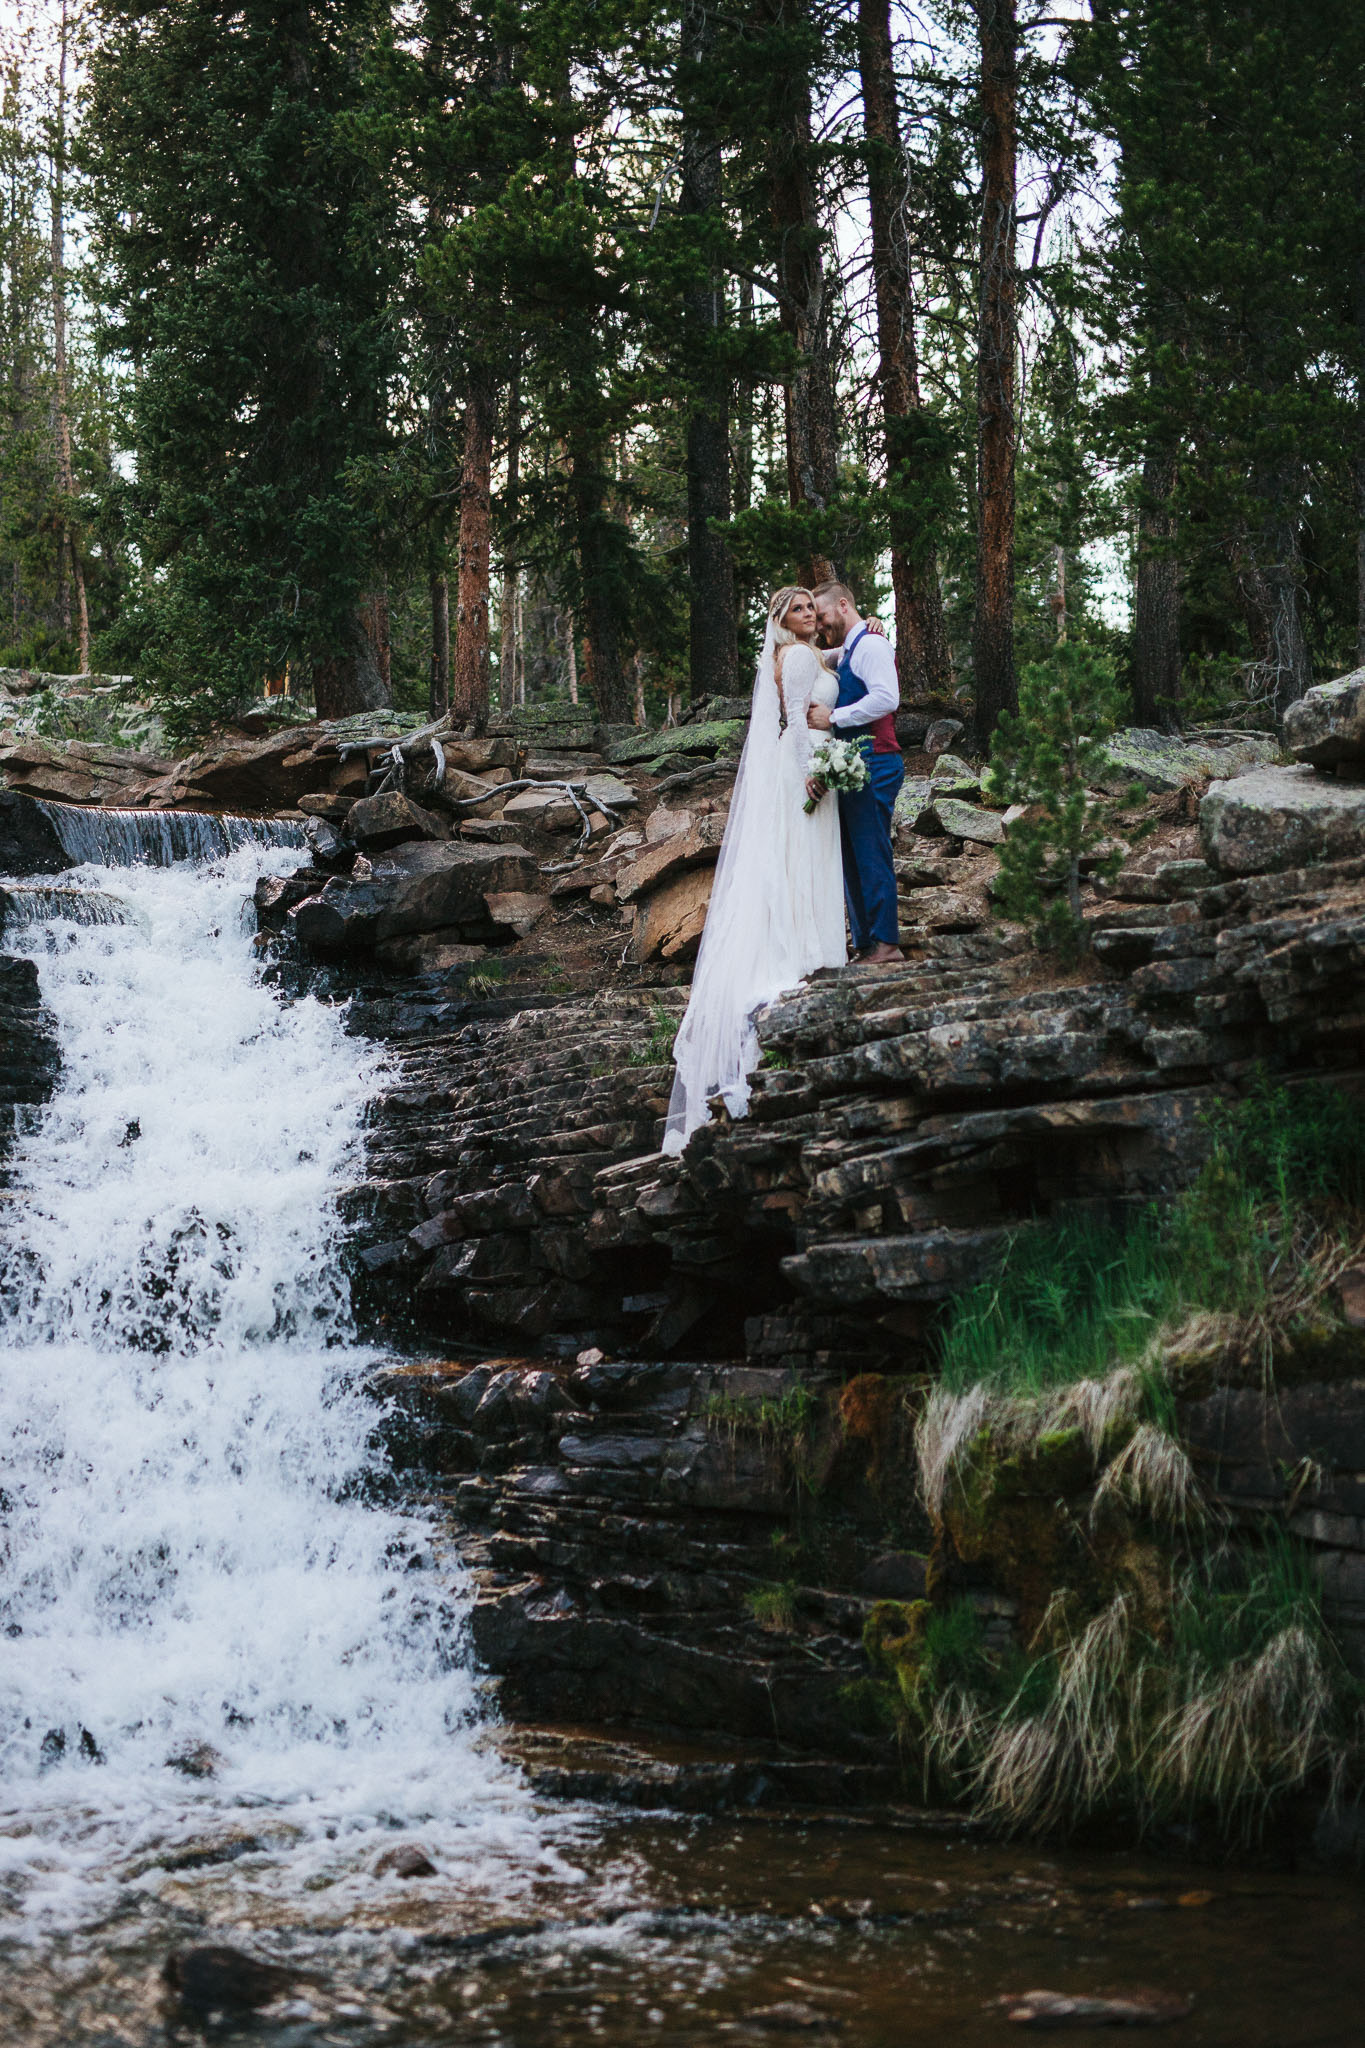 Bride and Groom pose for wedding photos at Provo Falls in the Utah Mountains